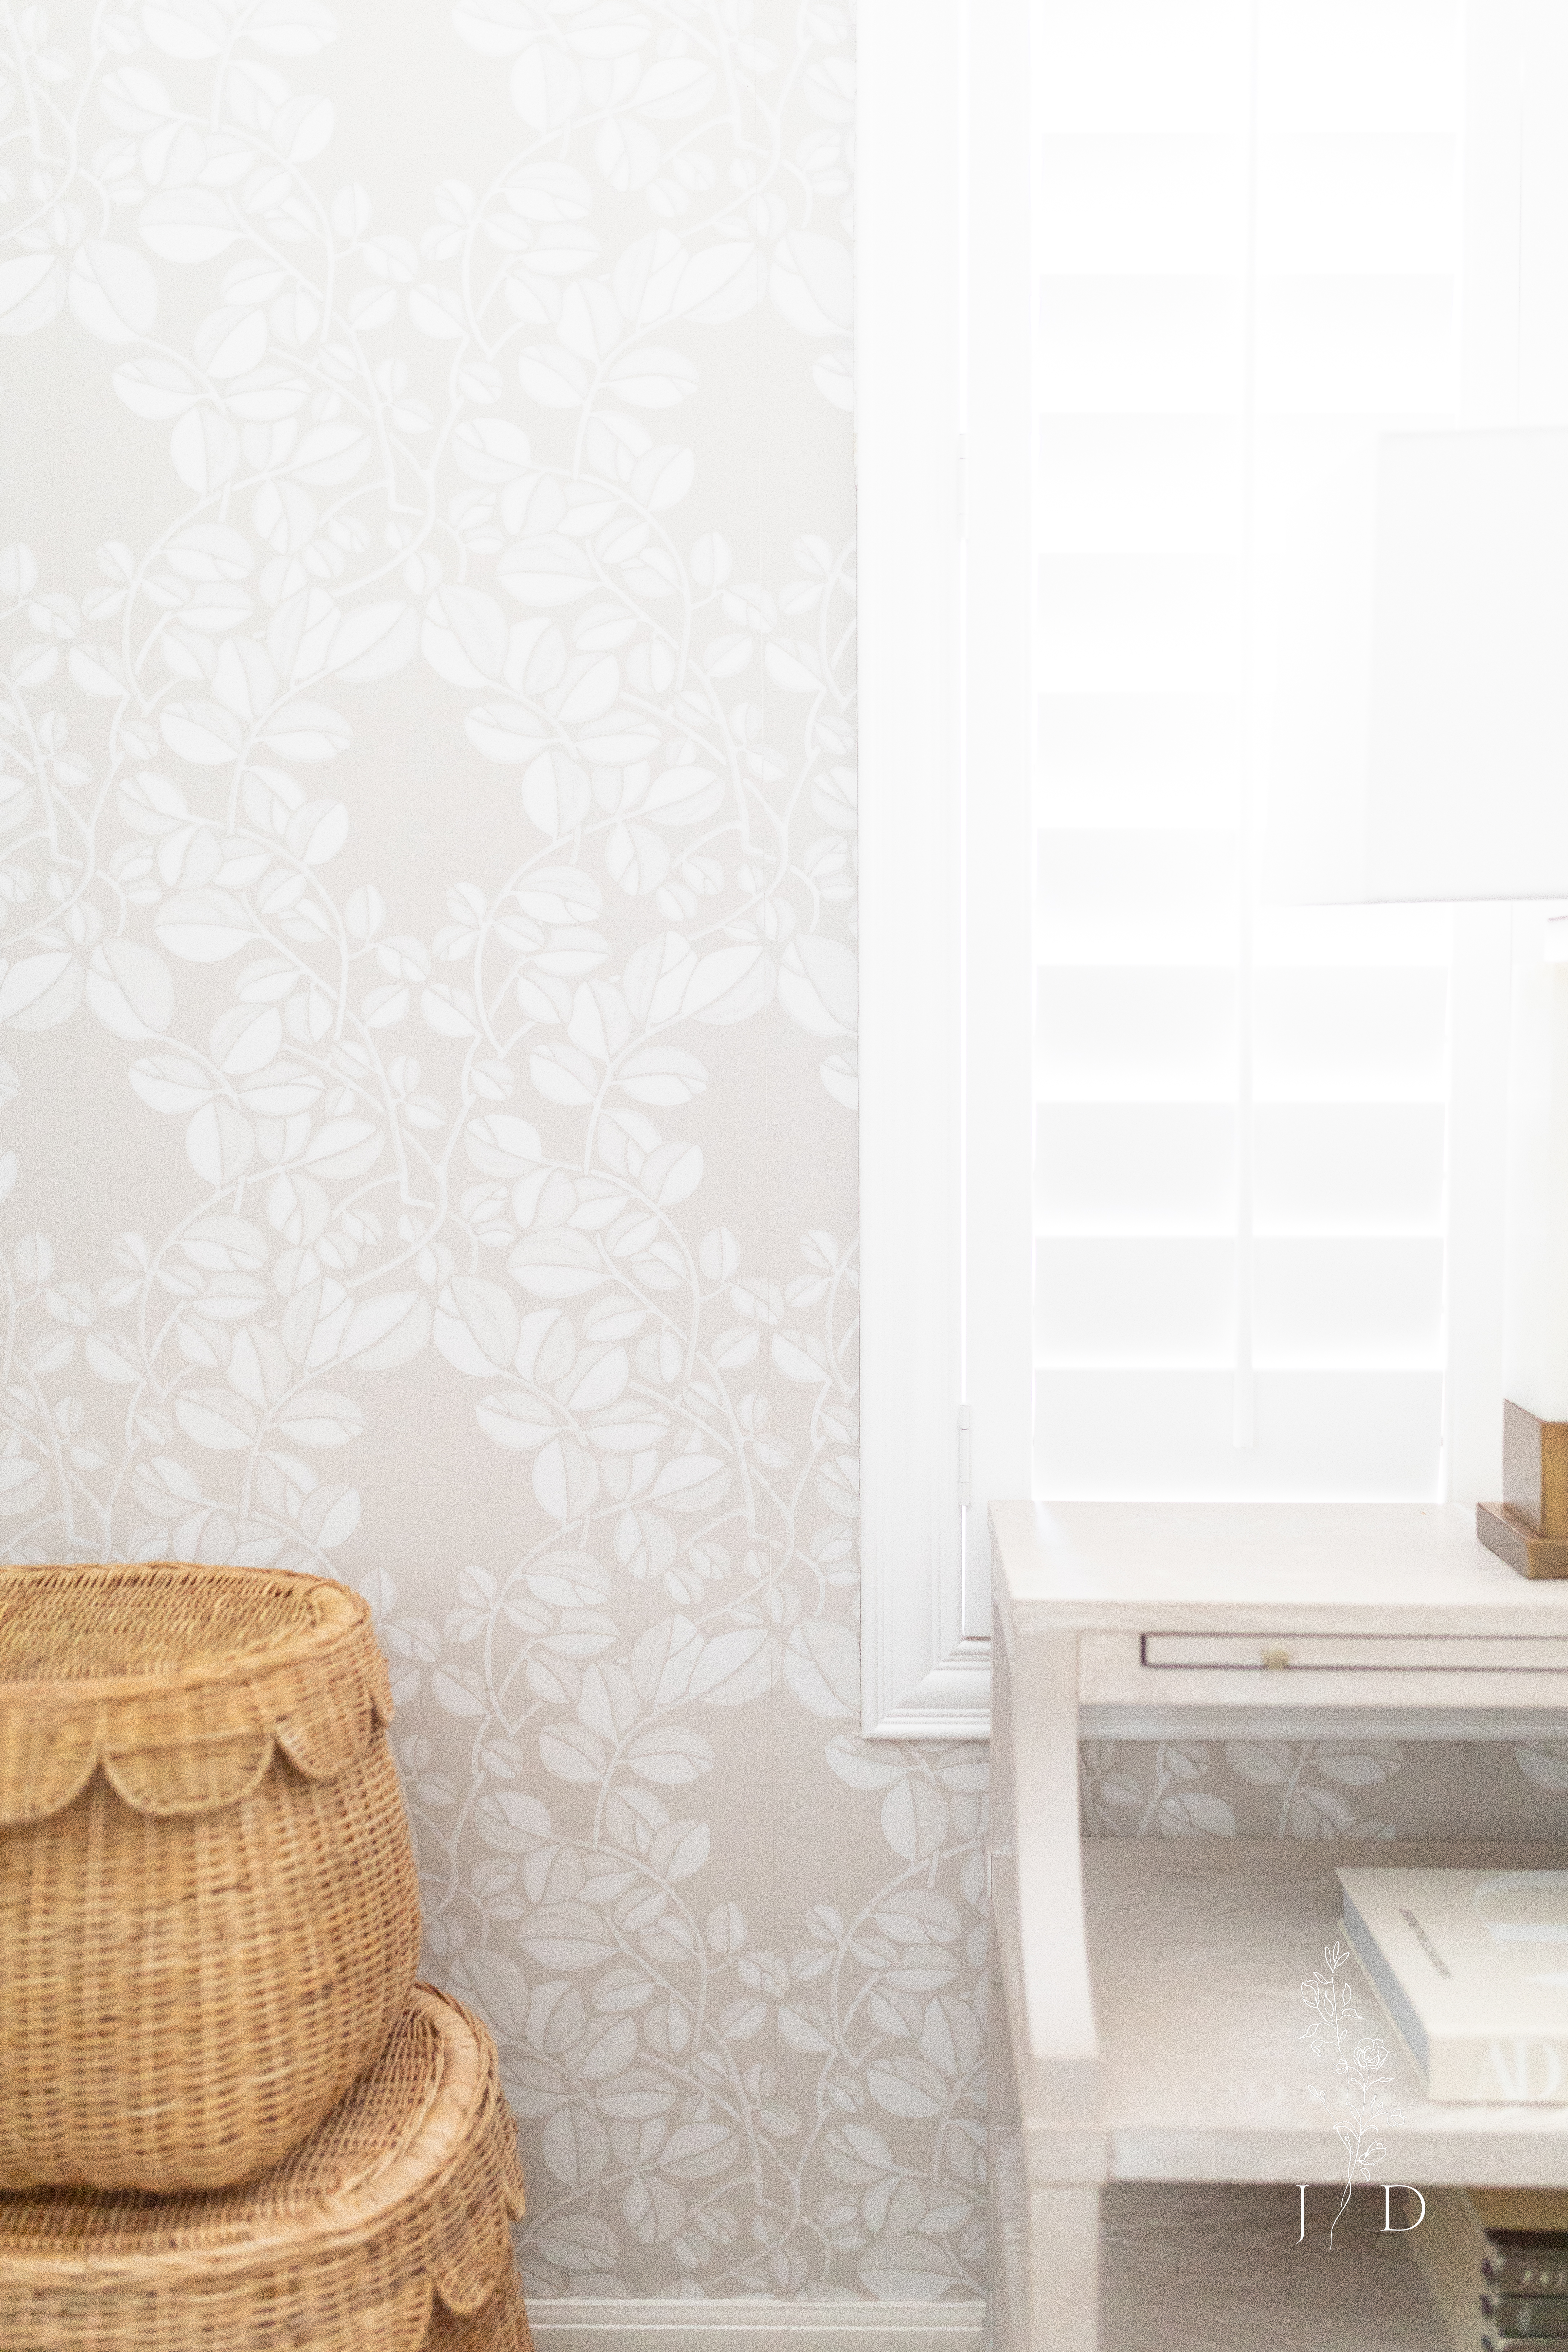 Serena and Lily's Best Products Wallpaper. They have so many including this one called Valley Wallpaper.